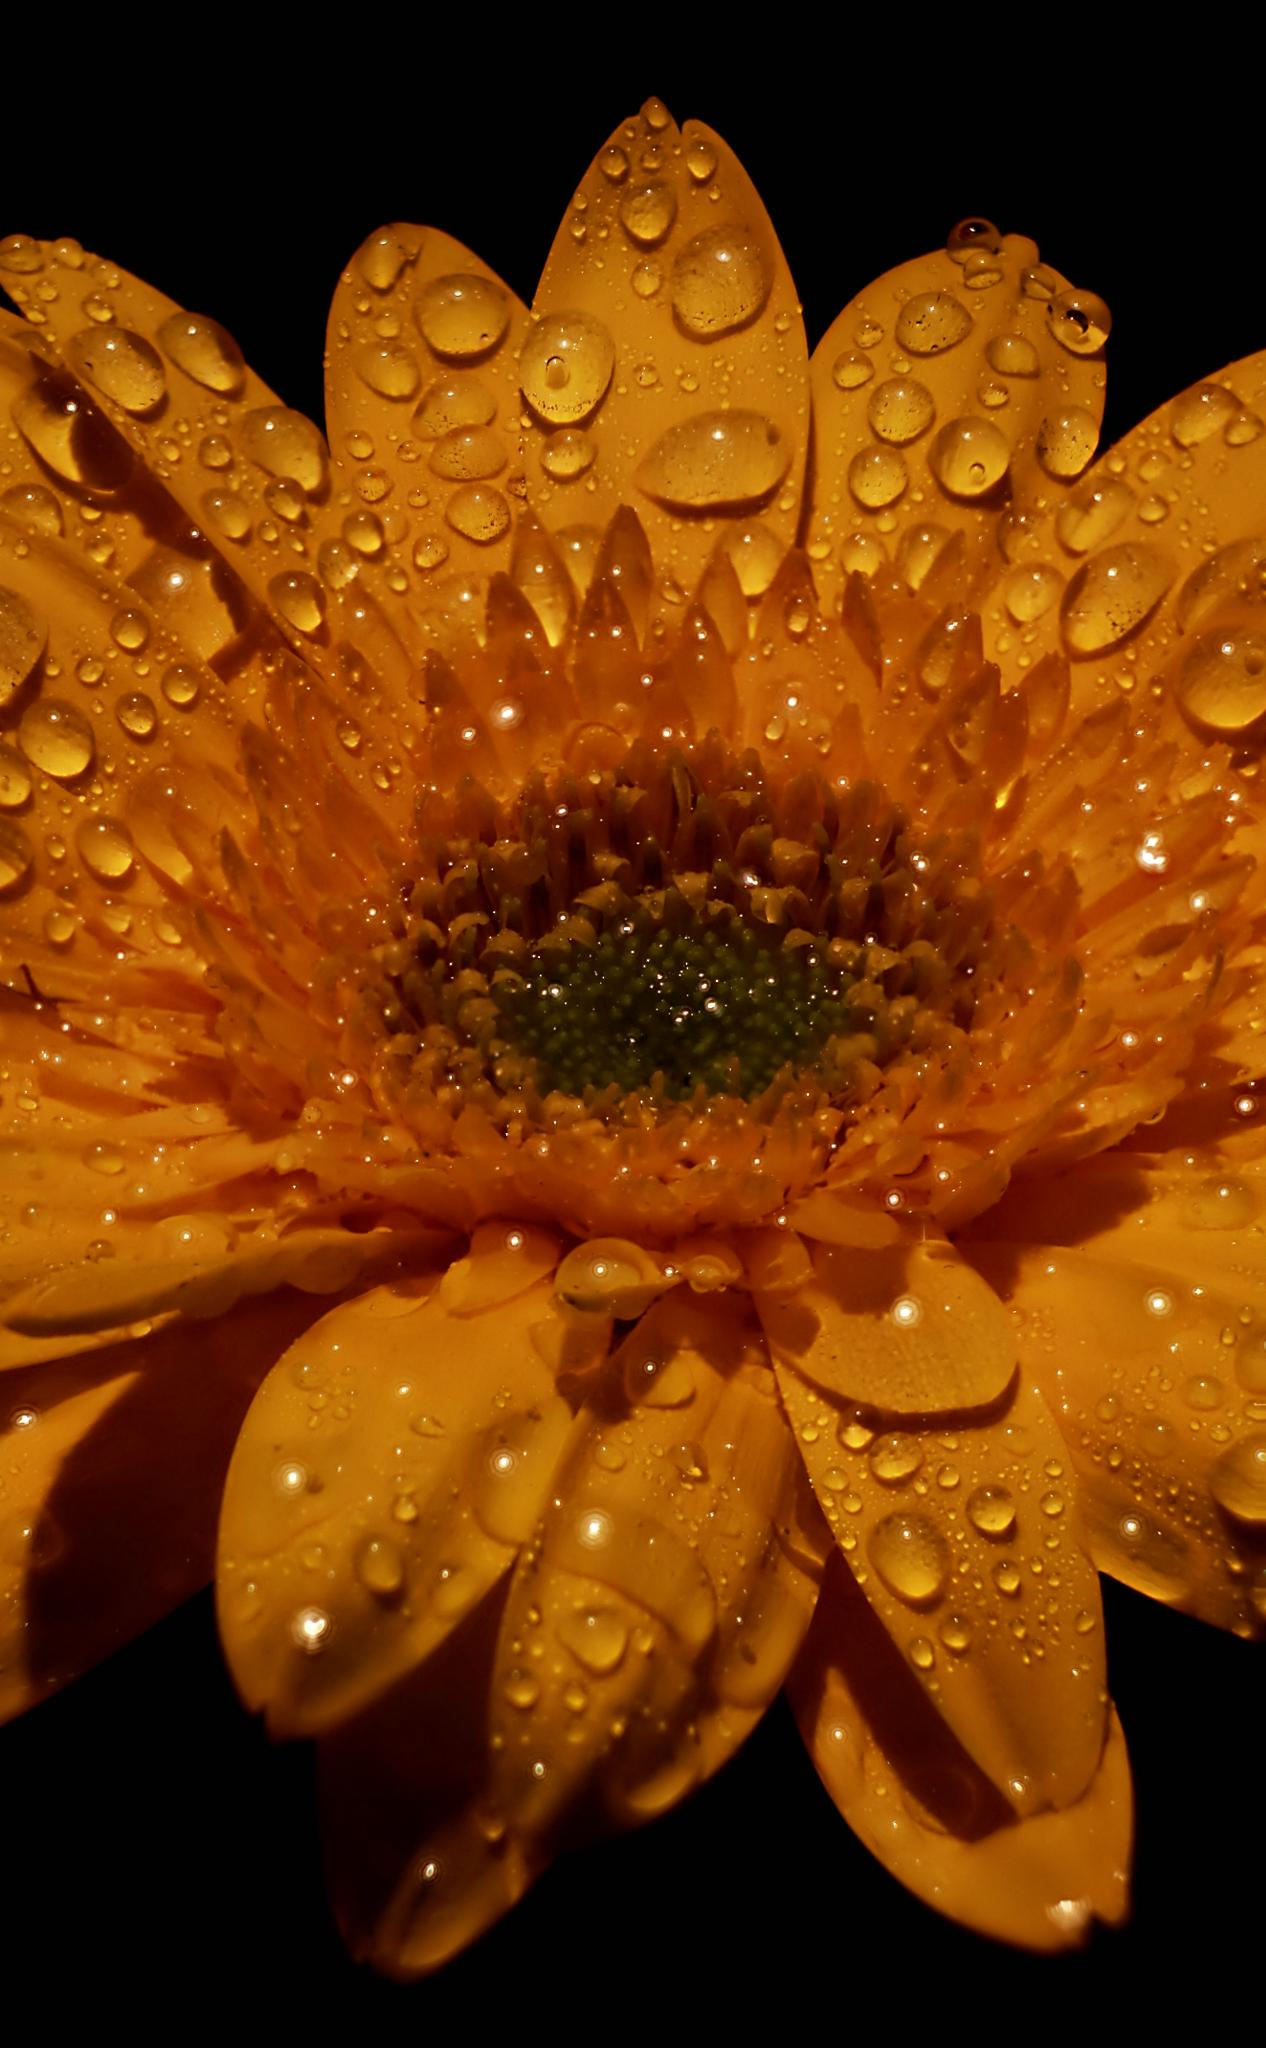 Dew on Gerbera by Andrew Munro